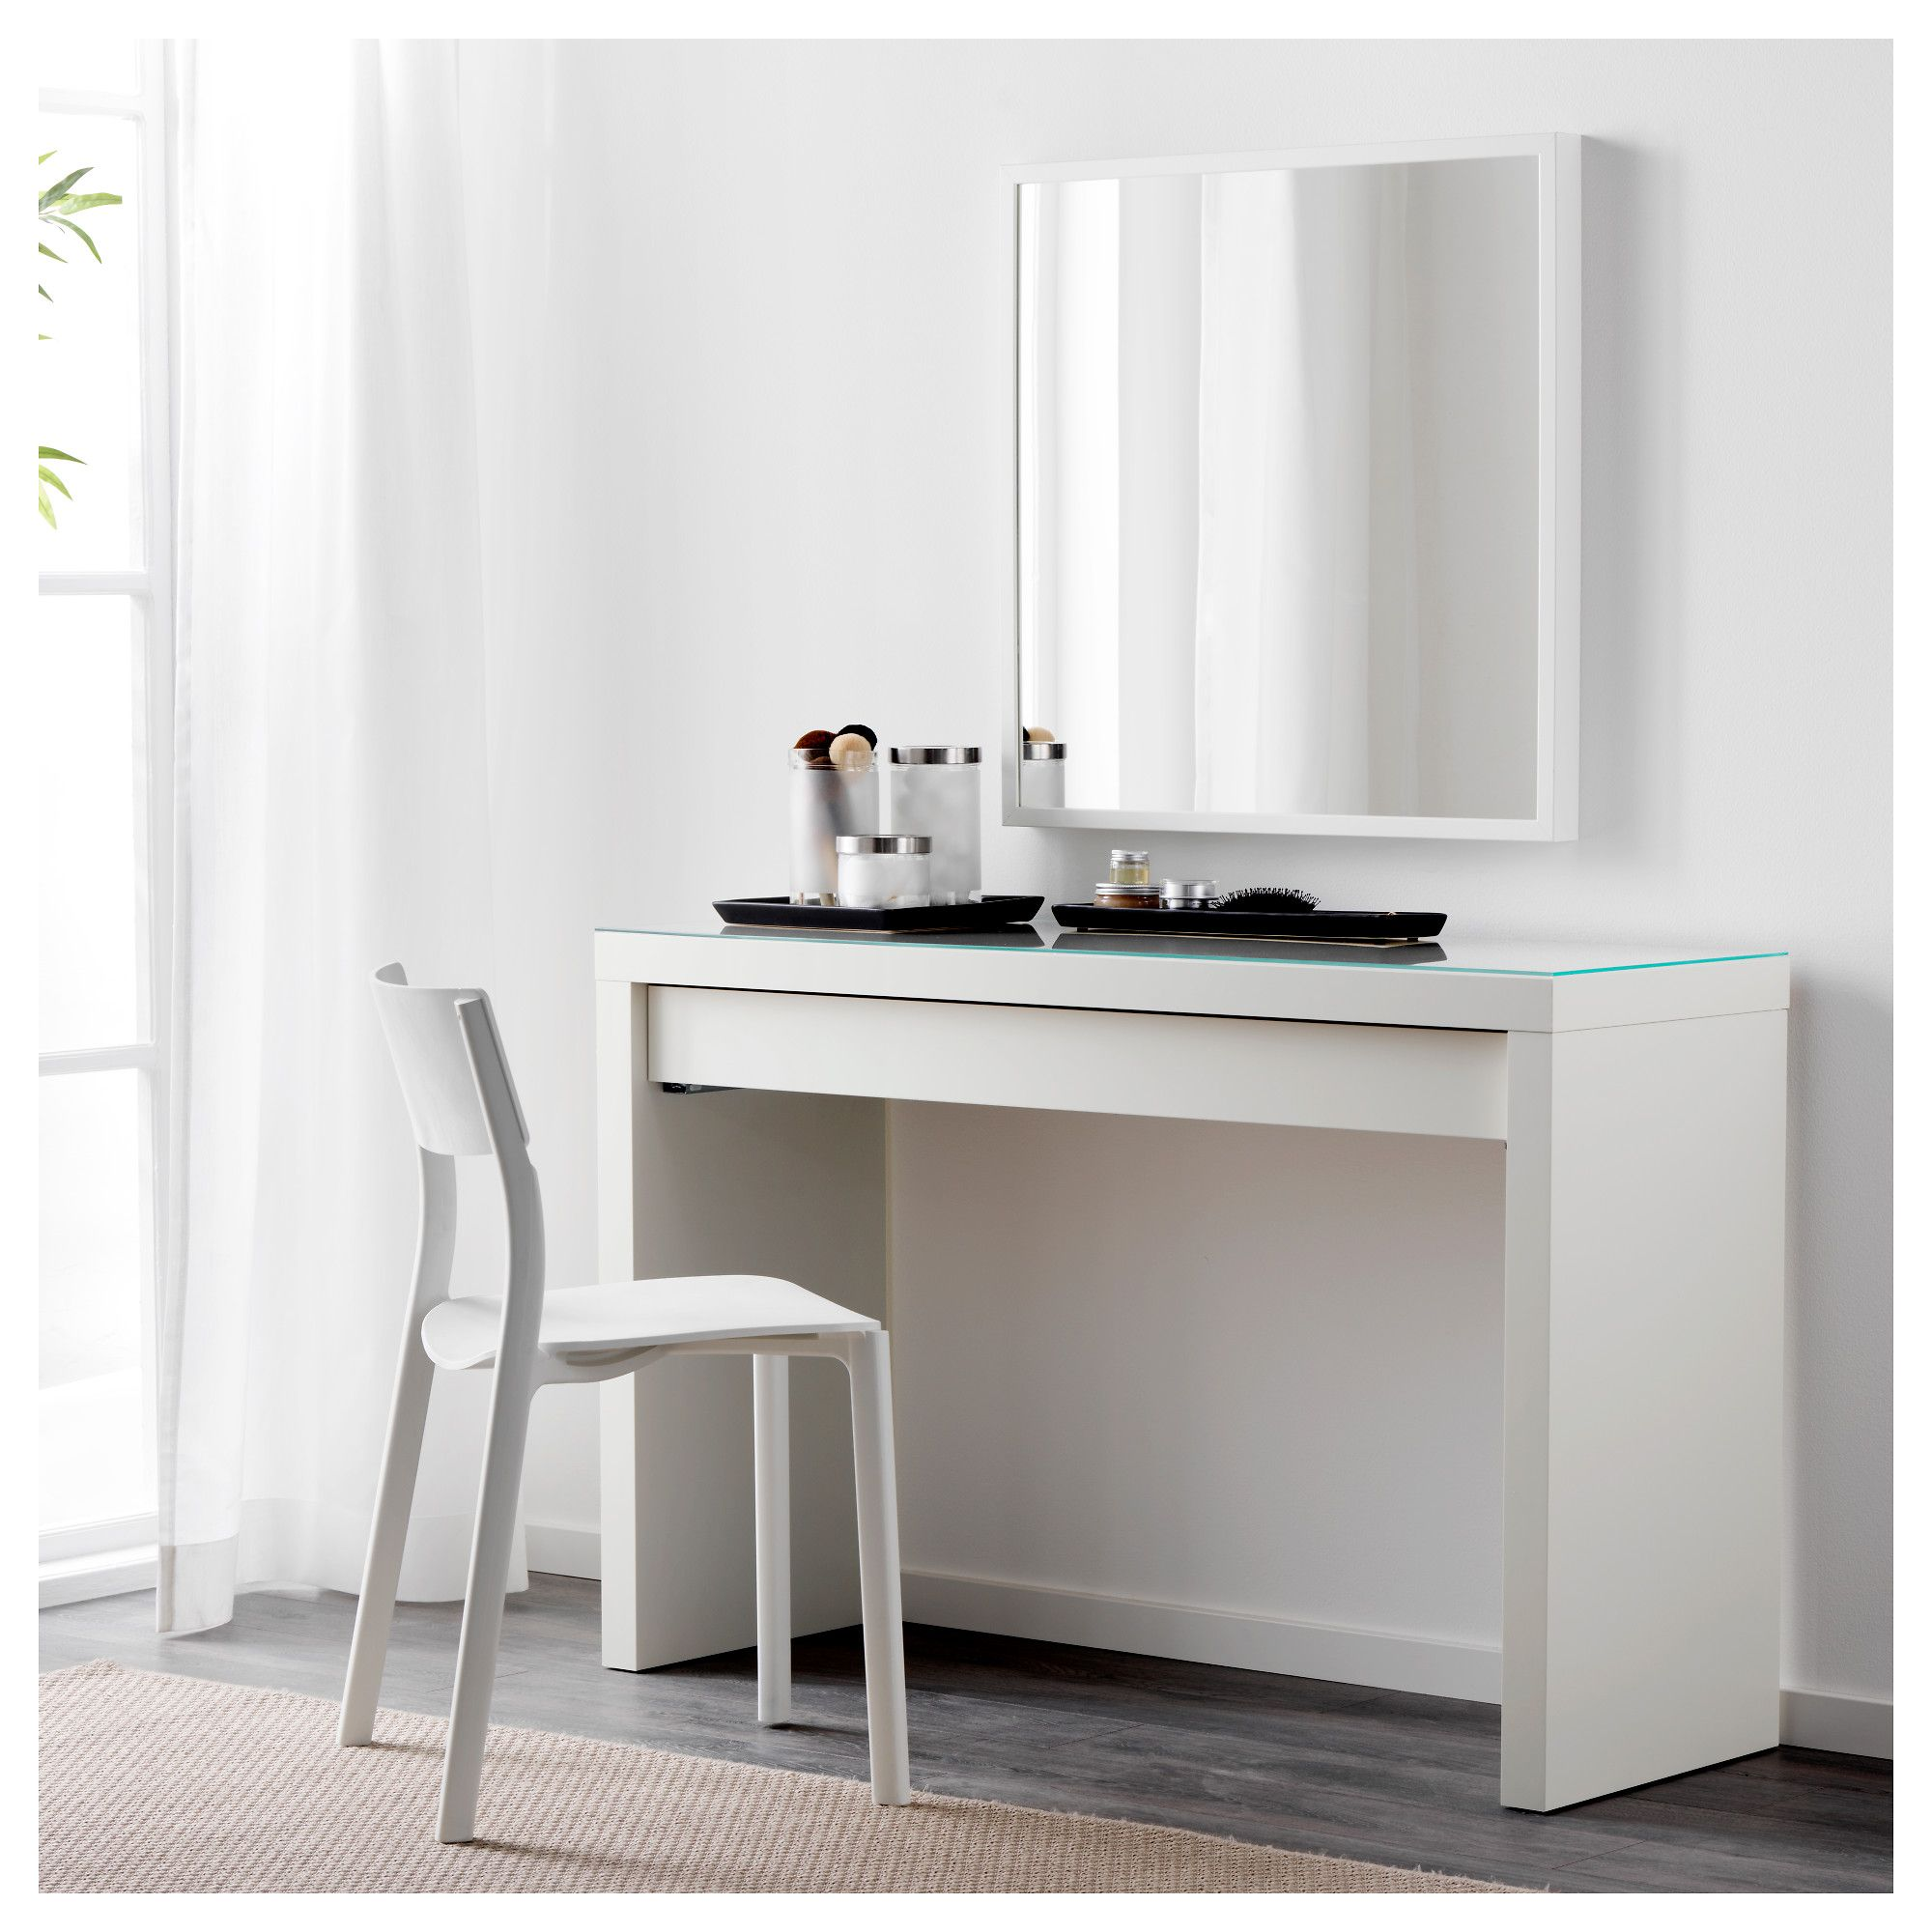 Ikea Malm Dressing Table Smooth Running Drawer With Pull Out Stop White Dressing Tables Malm Dressing Table Minimalist Dressing Tables